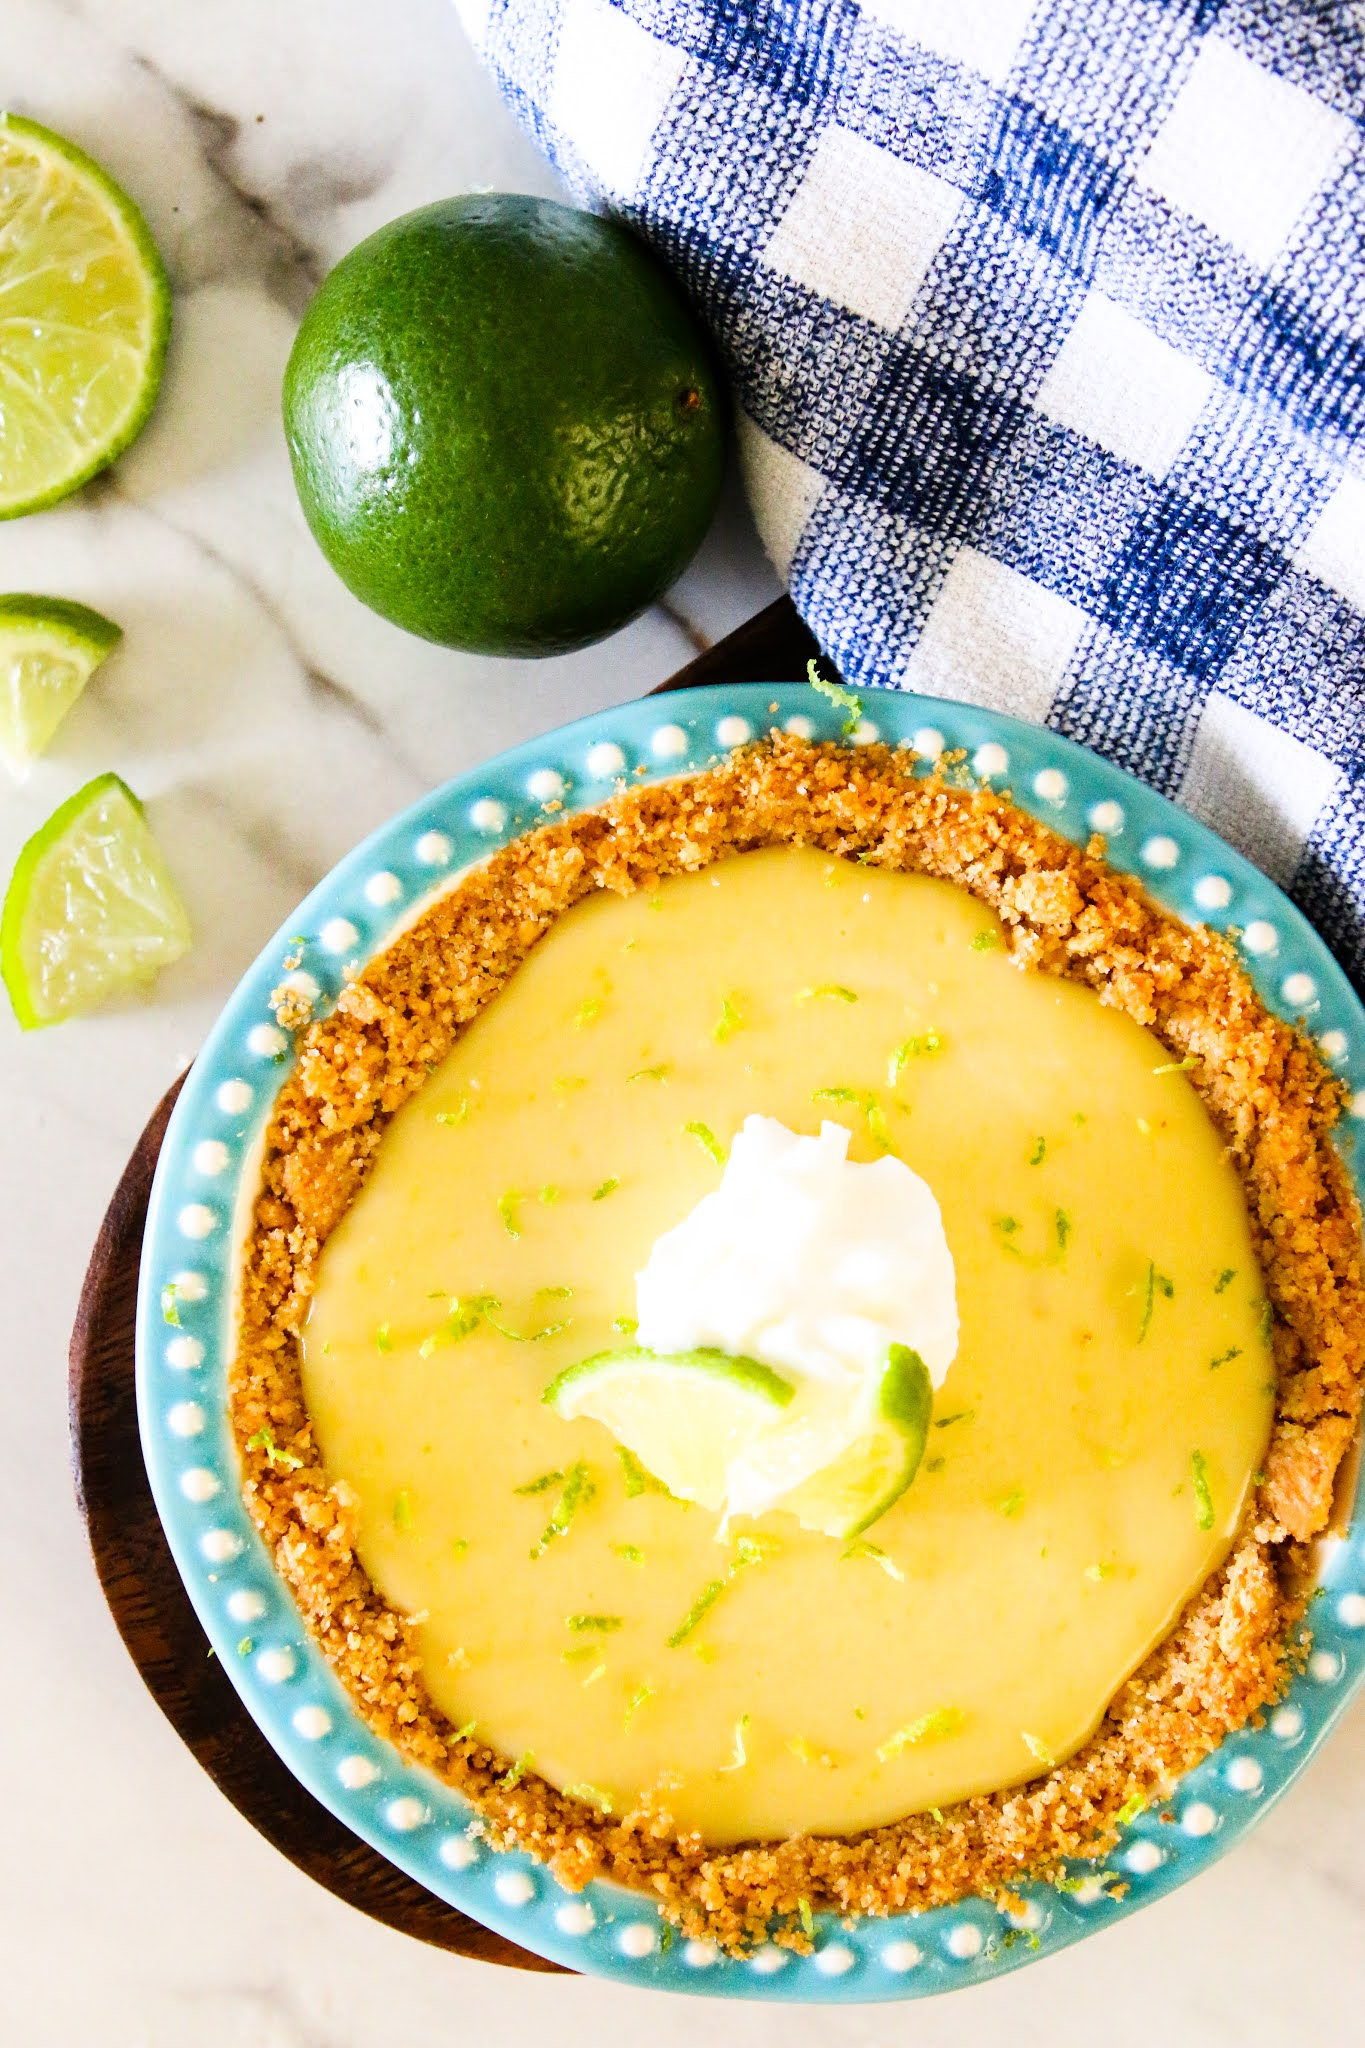 Key lime pie in a blue pie plate on a wood platter with cut limes on a marble table and a blue dish towel in the background.